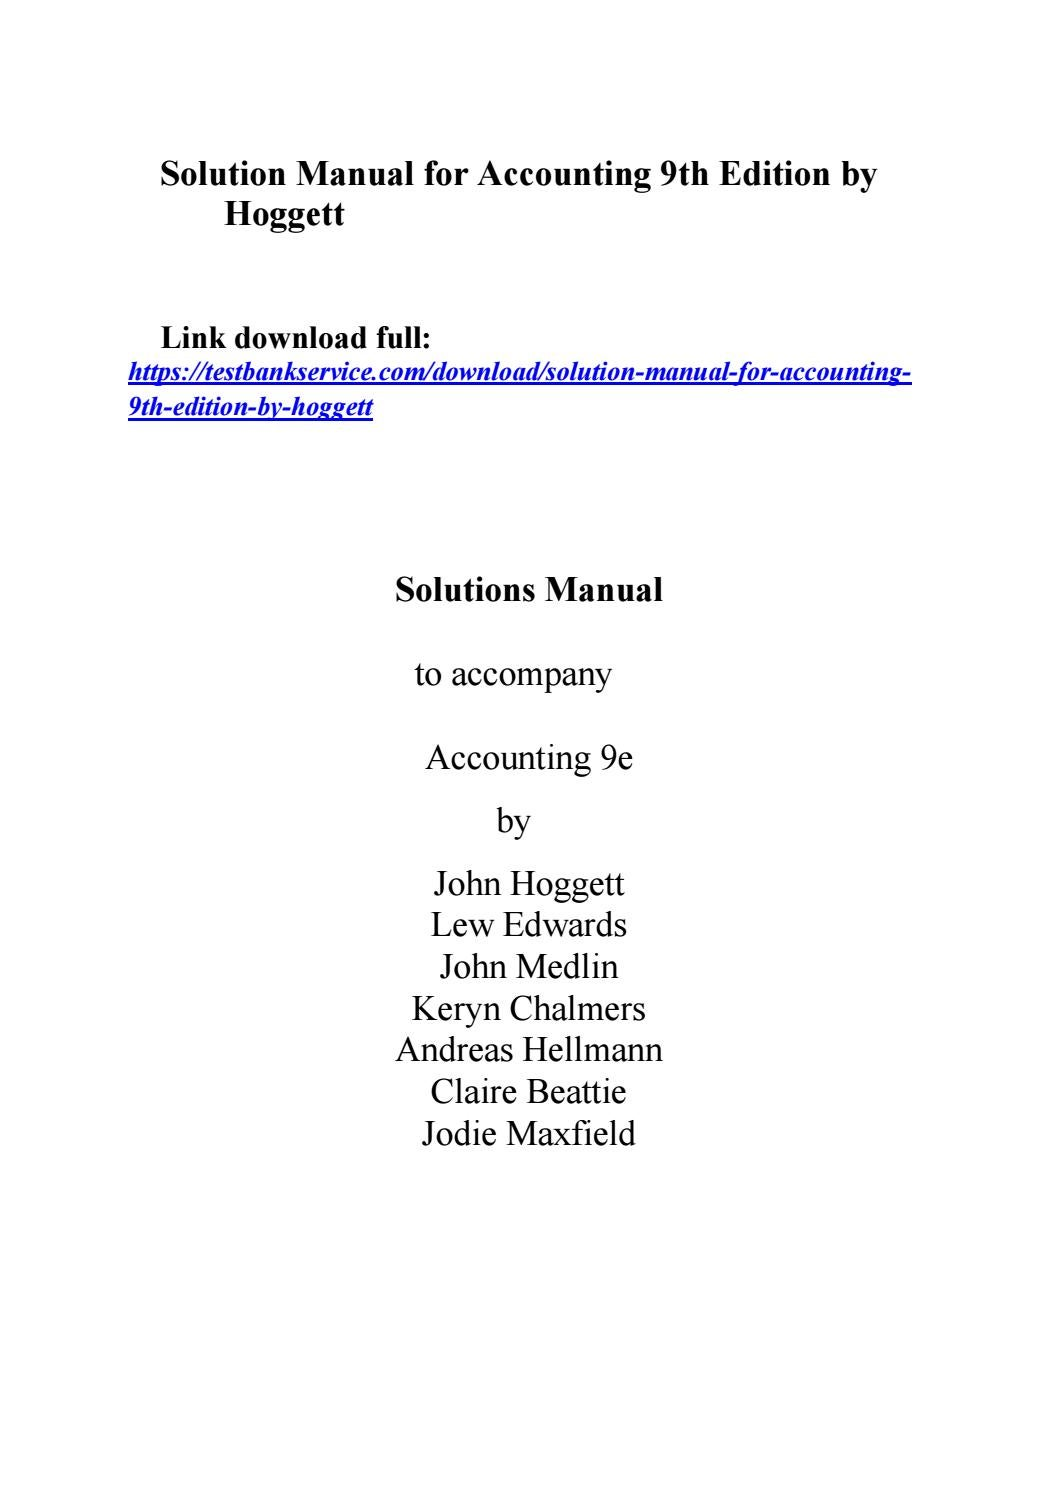 Solution manual for accounting 9th edition by hoggett by finchjem266 - issuu